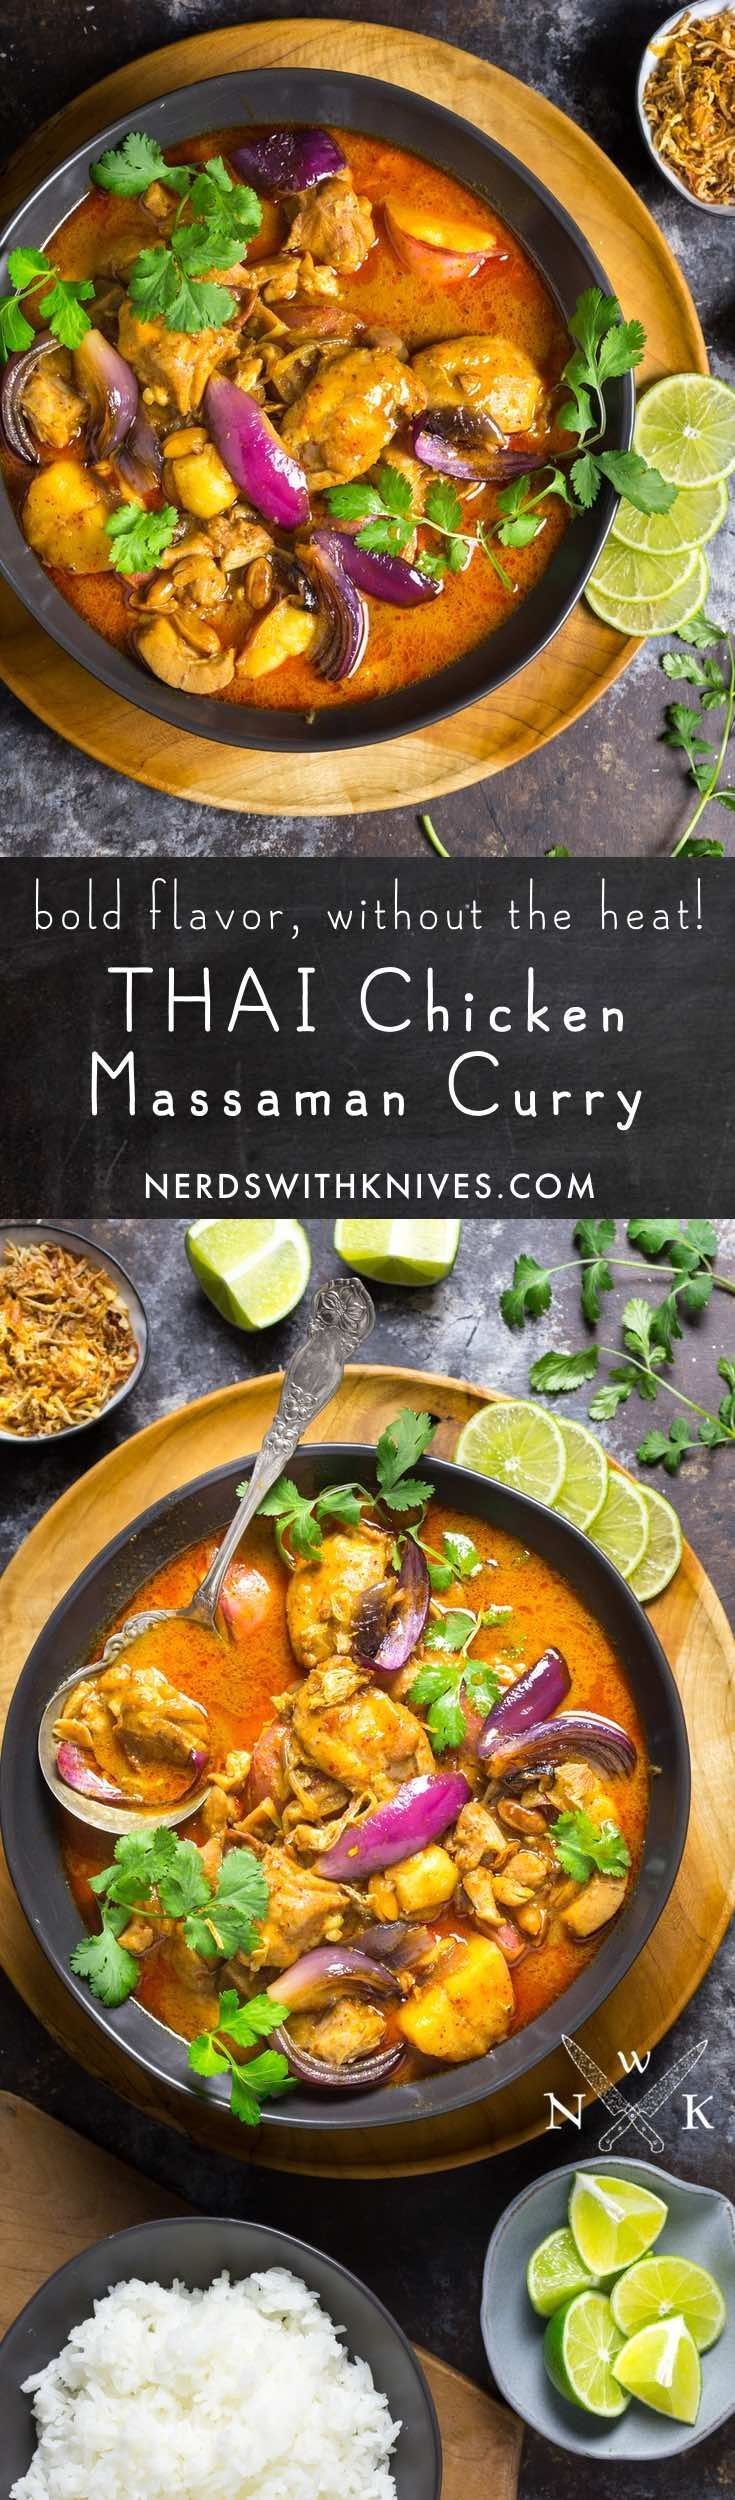 Chicken Massaman Curry is a rich and complex Thai dish, without the fiery heat. Our version is made with Wheat Beer, which gives a citrusy note.